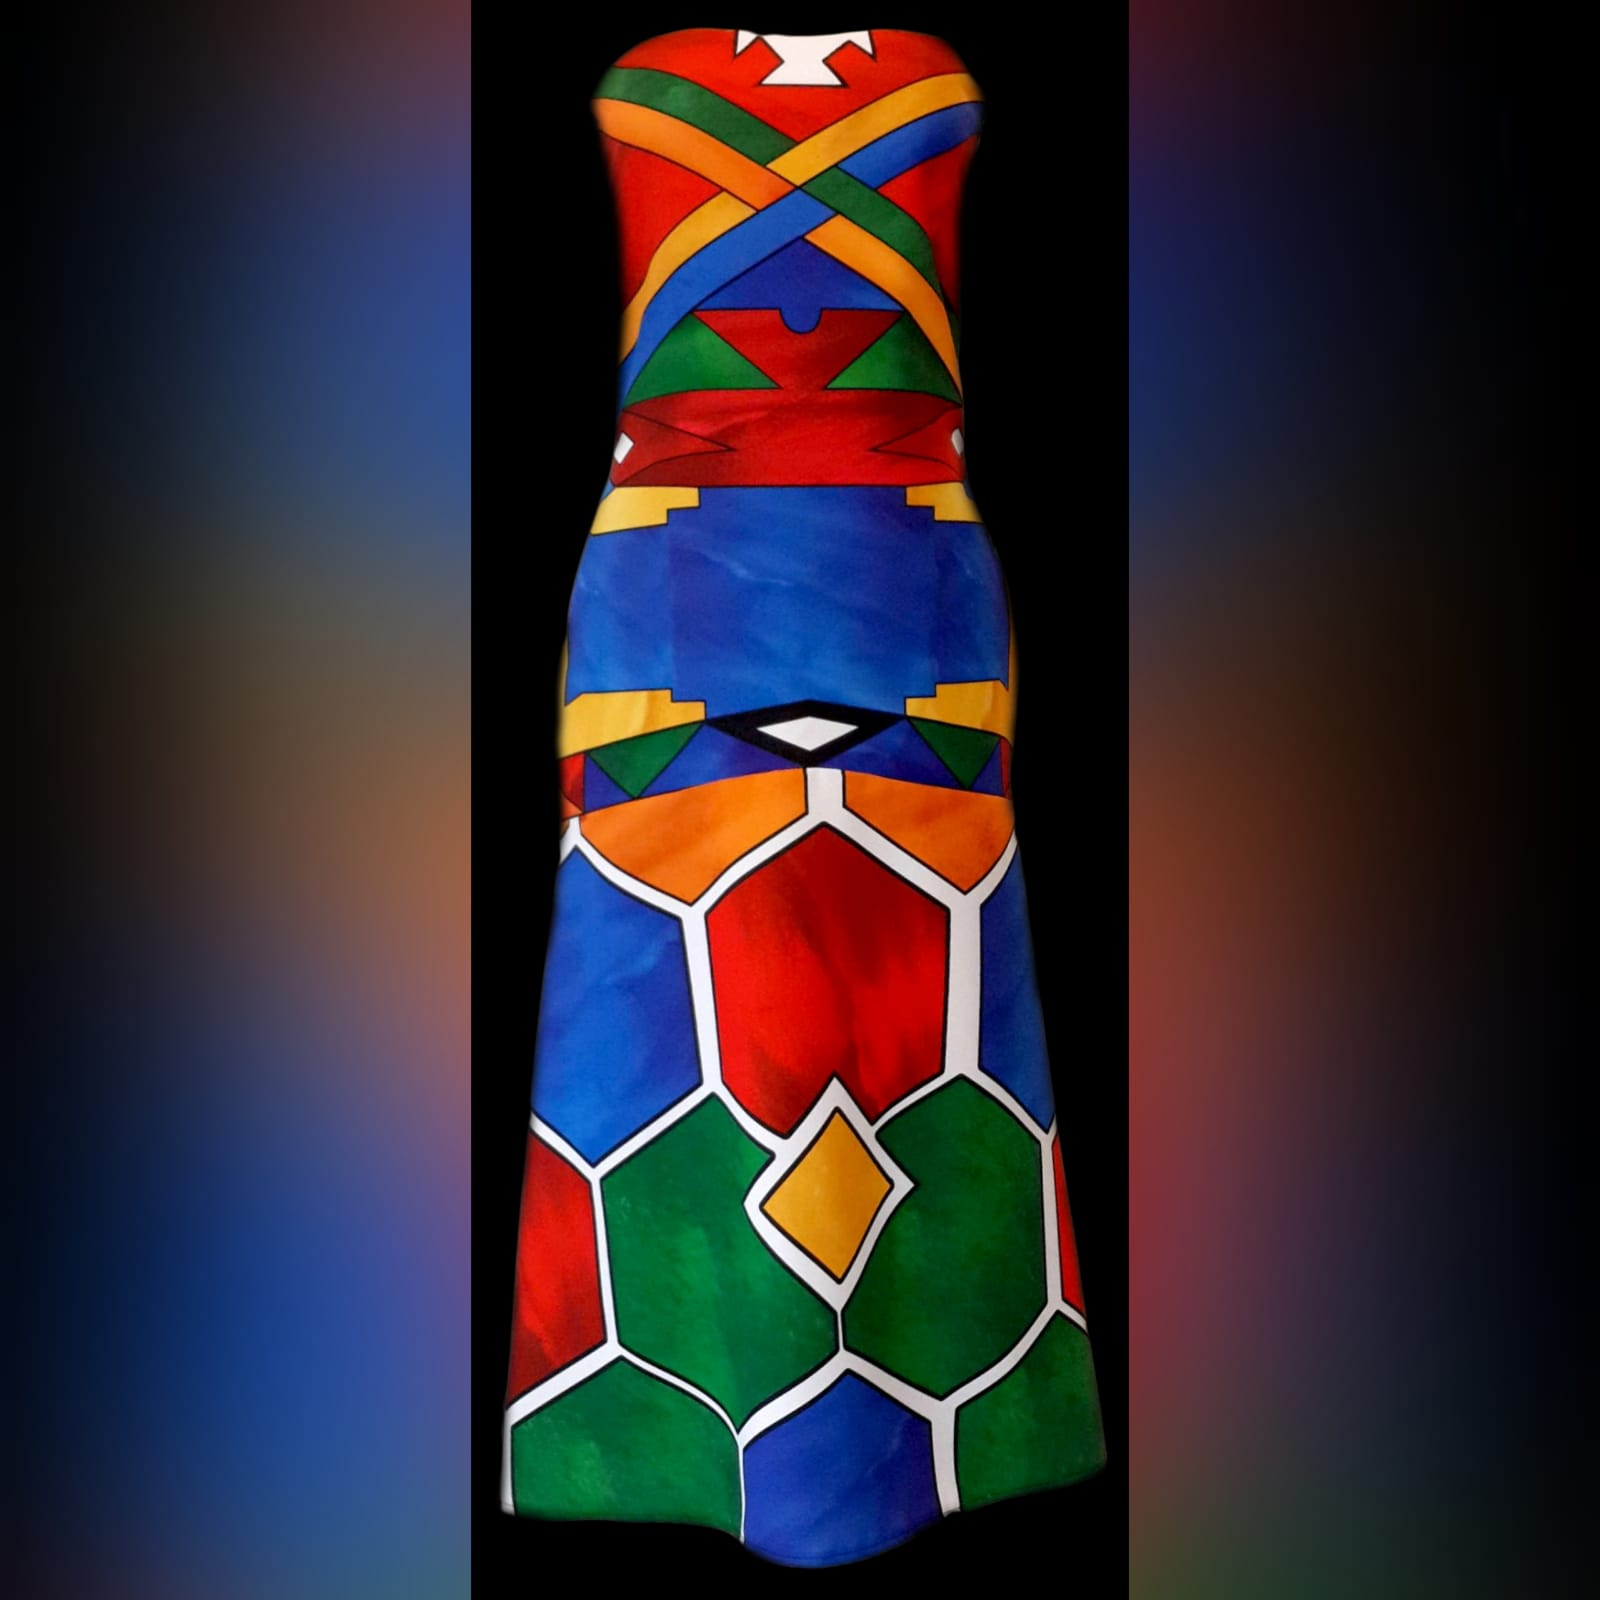 Ndebele traditional wedding dress 6 ndebele traditional wedding dress. Boob tube traditional wedding dress and fitted till the hips and flowy.